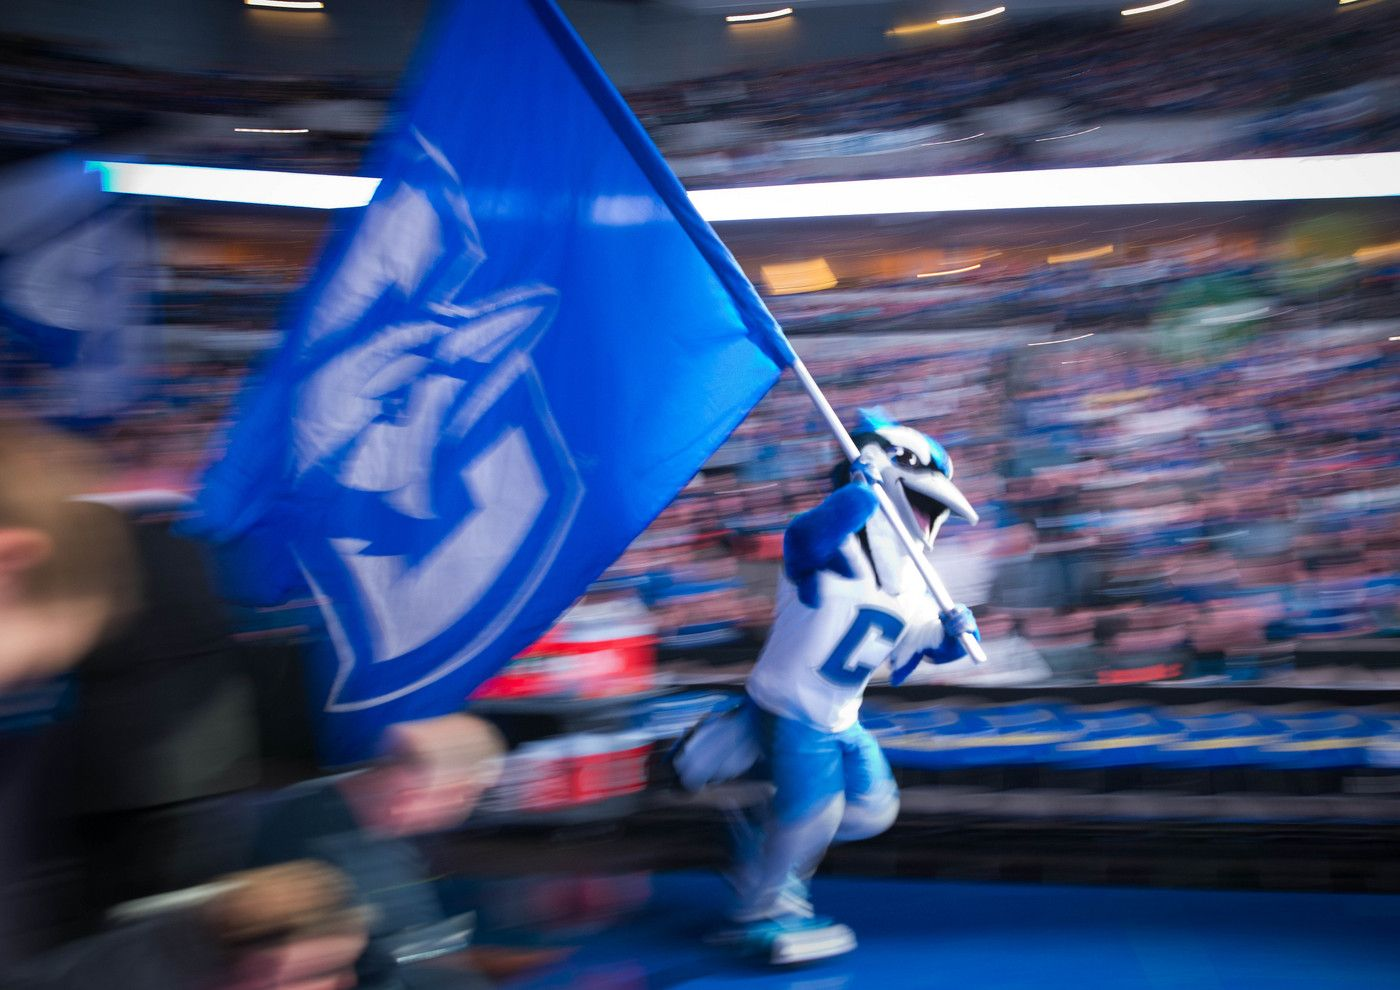 The Creighton mascot leads the team on to the court before